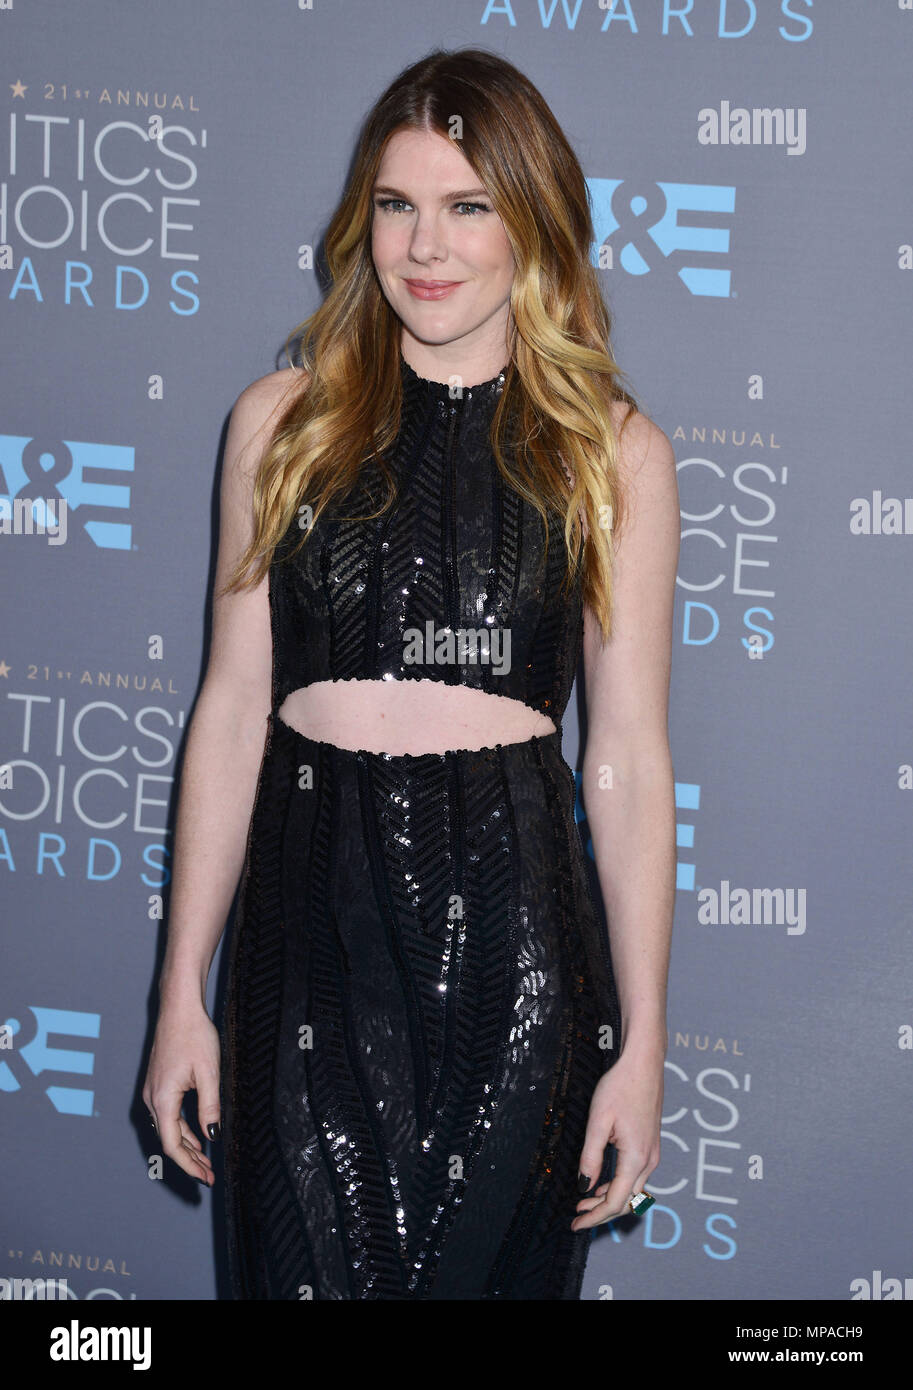 Celebrites Lily Rabe nude (82 photos), Sexy, Leaked, Twitter, legs 2020